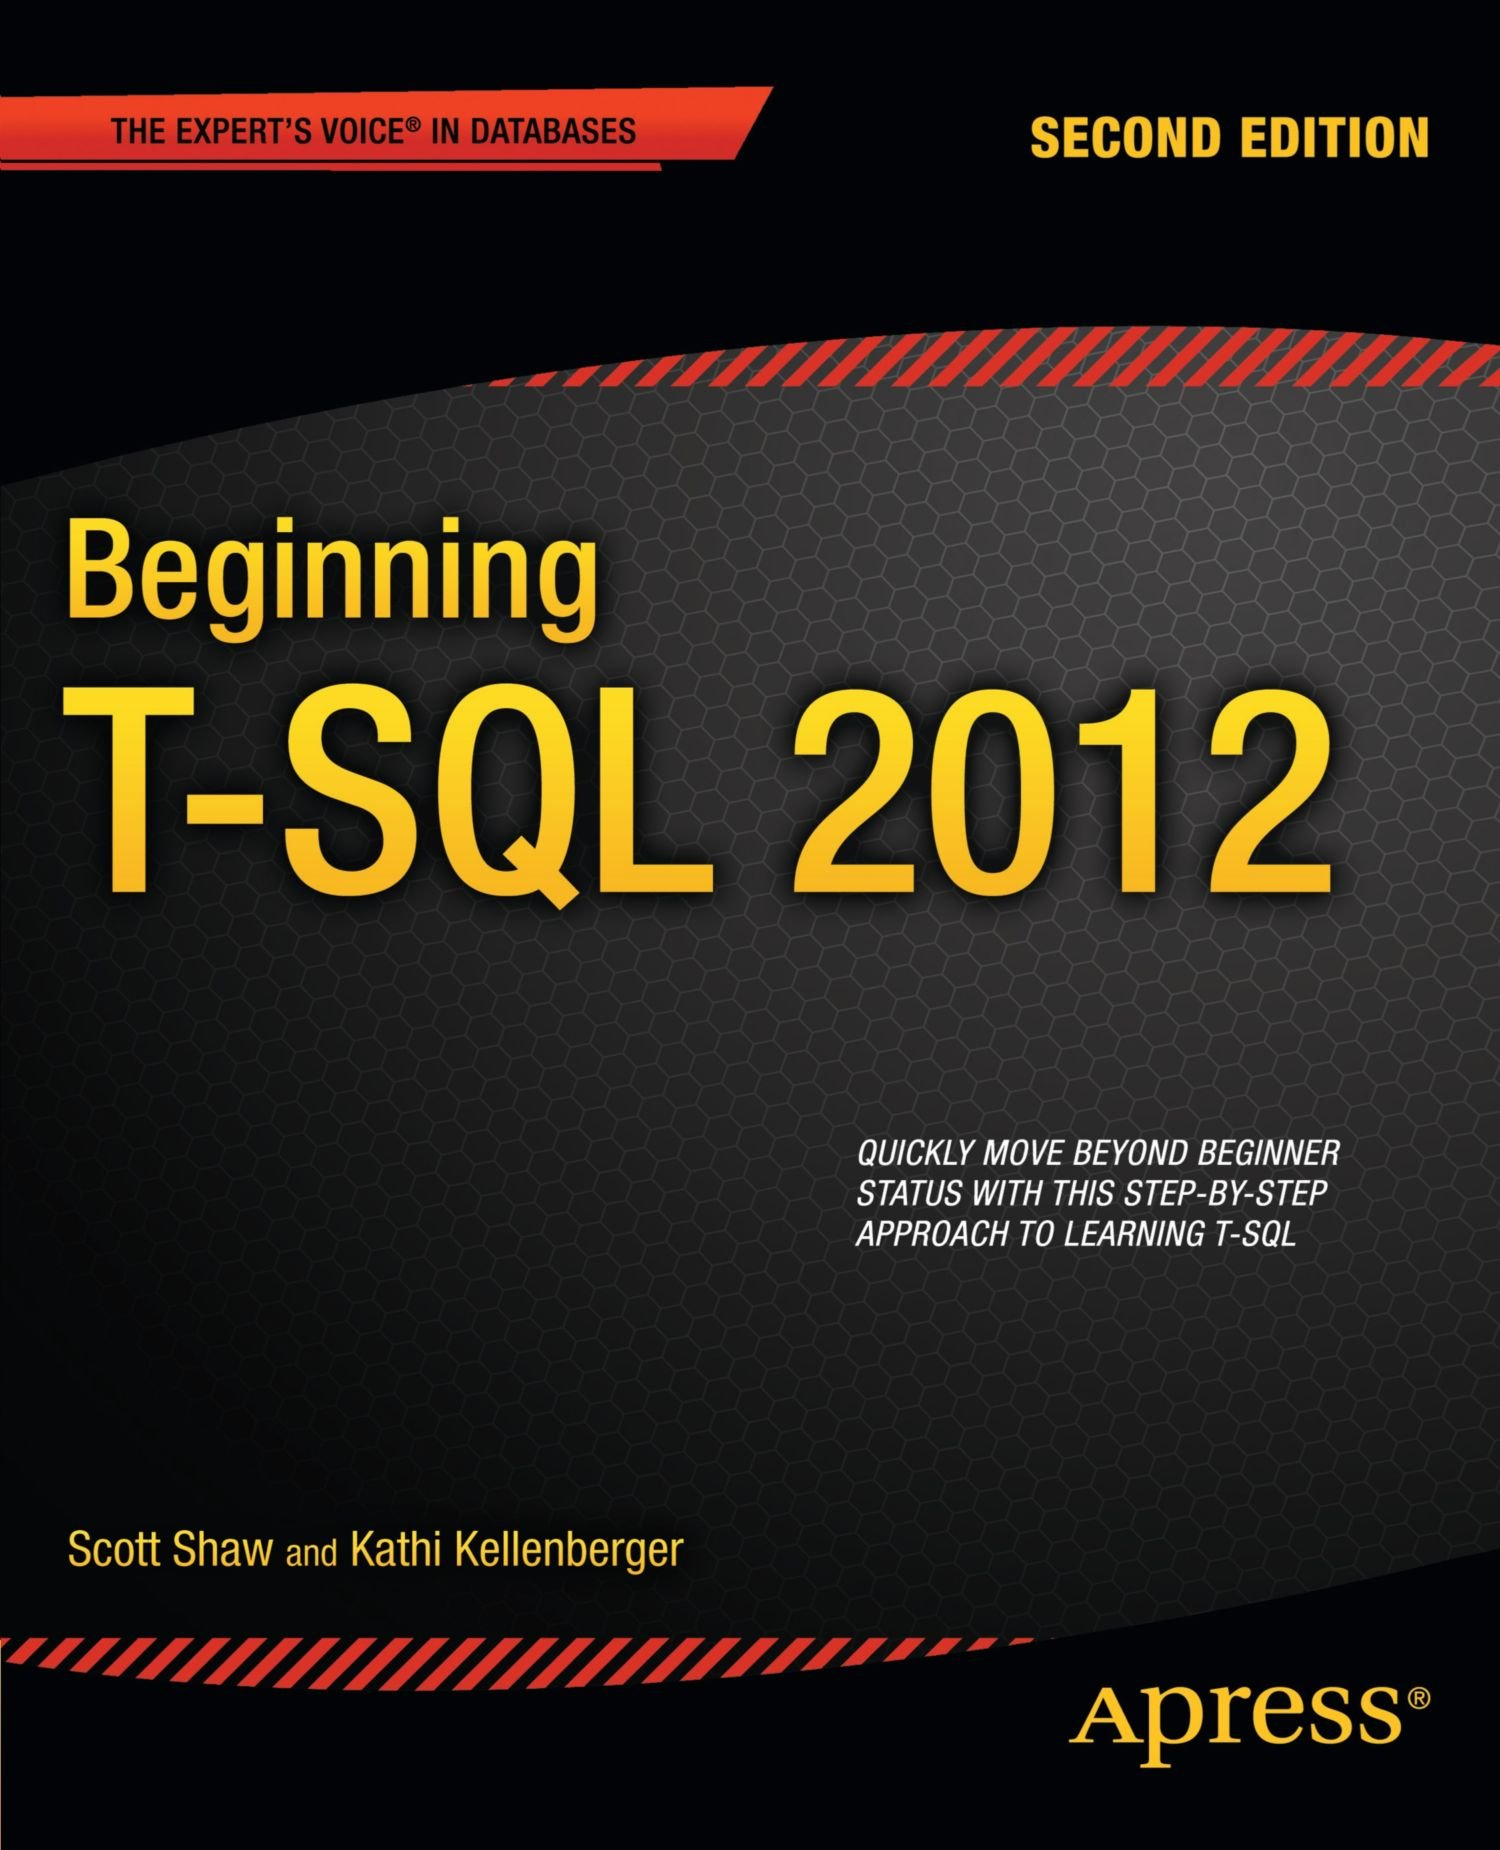 Beginning T-SQL 2012 (Expert's Voice in Databases) by Apress